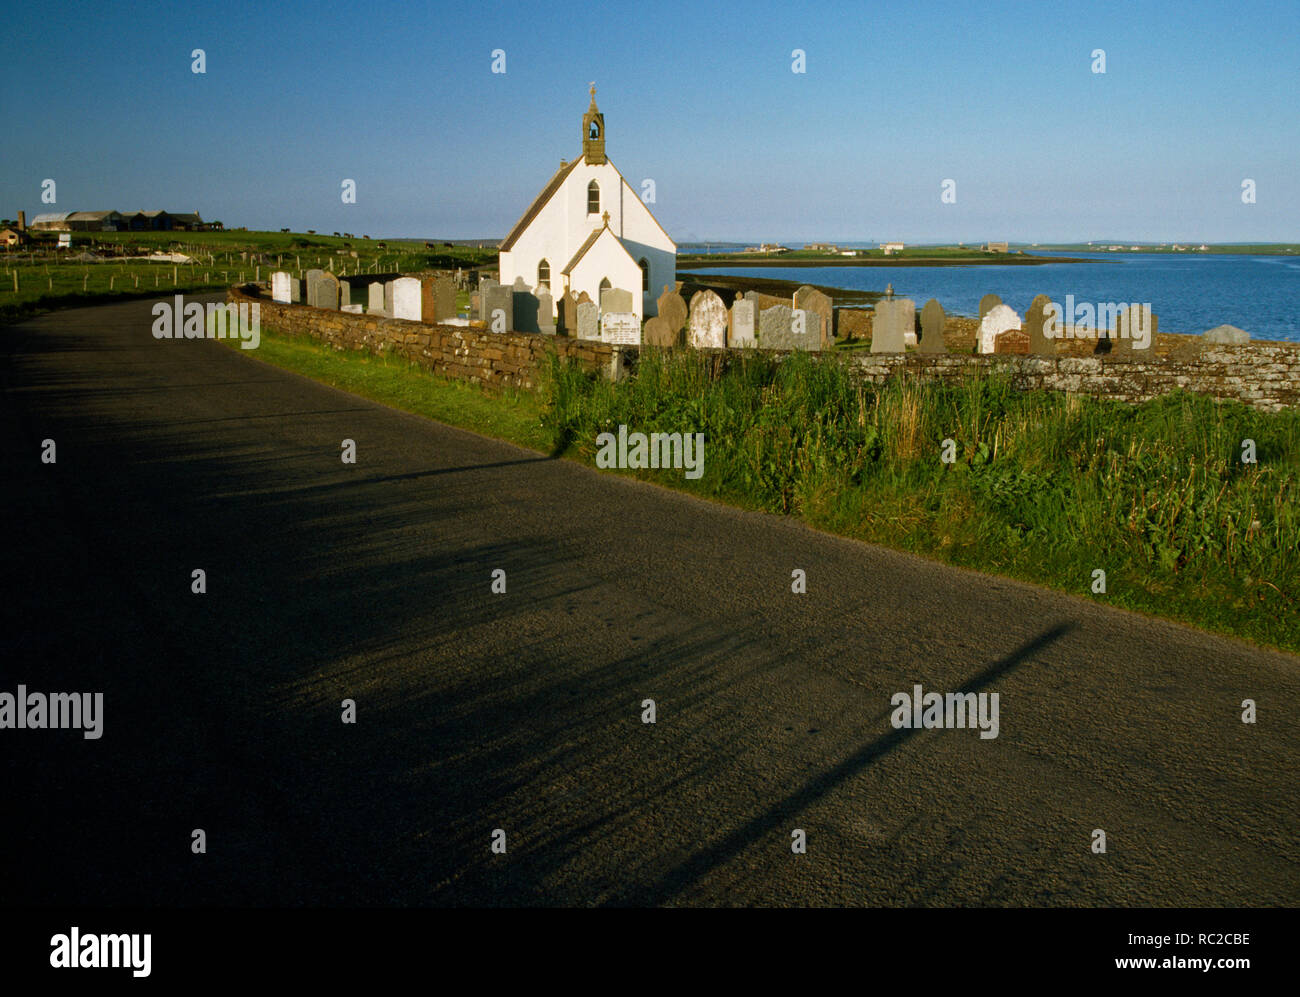 St John's church and graveyard, Stonequoy, Hoy, Orkney, Scotland. Non Denominational mission church, now redundant, cared for by local trust. - Stock Image